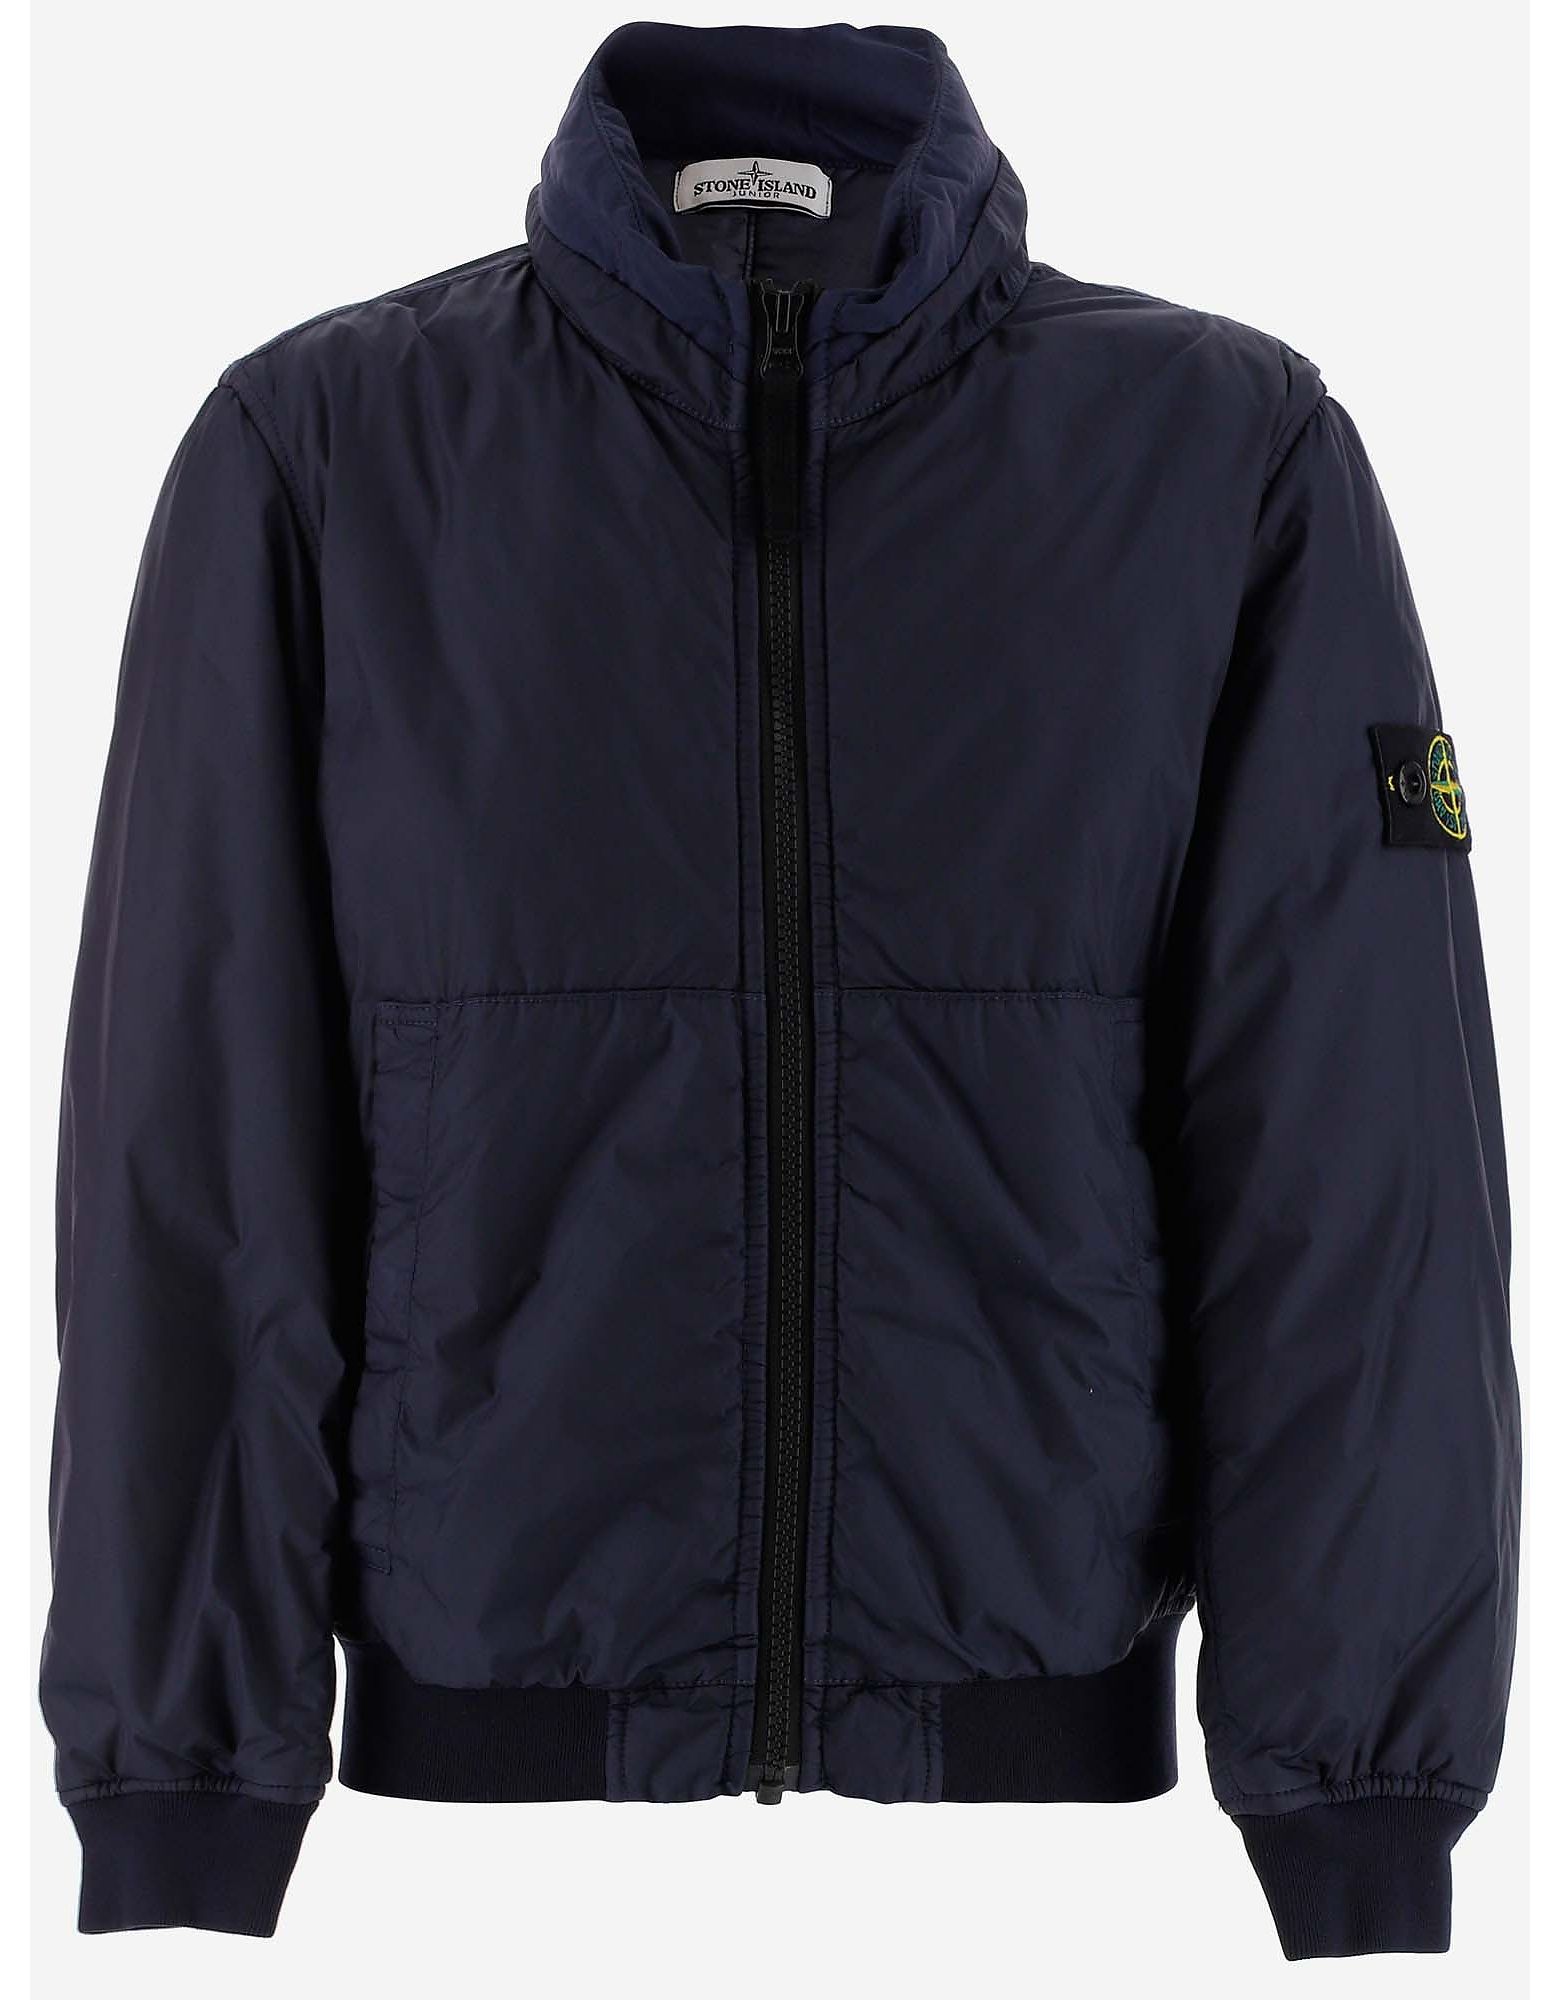 Stone Island Designer Boy's Clothing, Blue Boy's Padded Jacket